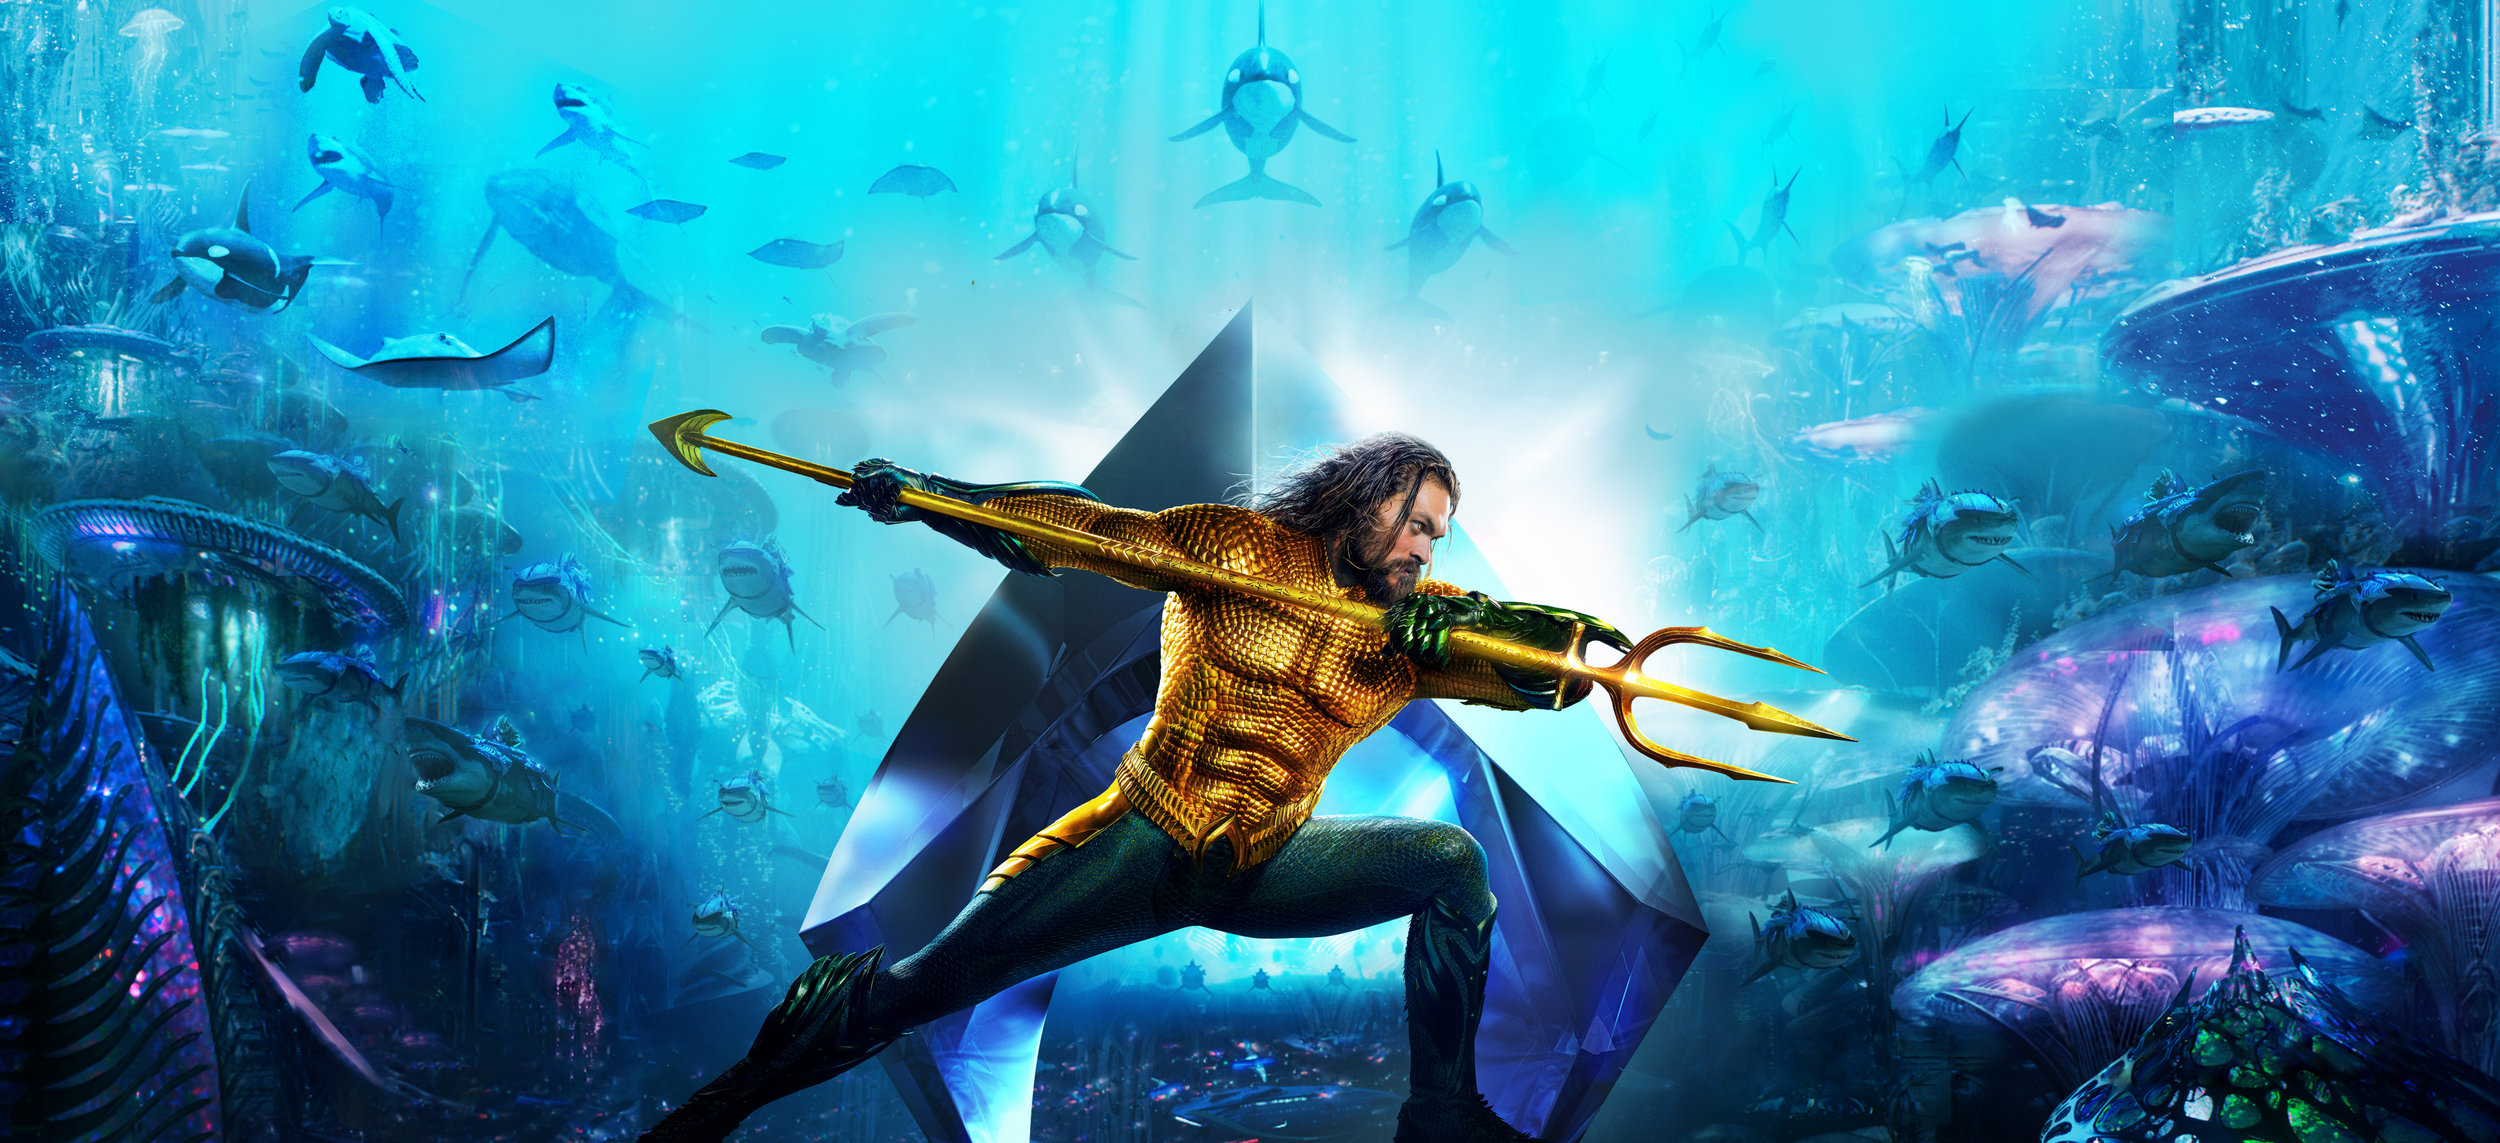 wallpapersden.com_aquaman-2018-movie-banner-textless_4000x1828 (1).jpg